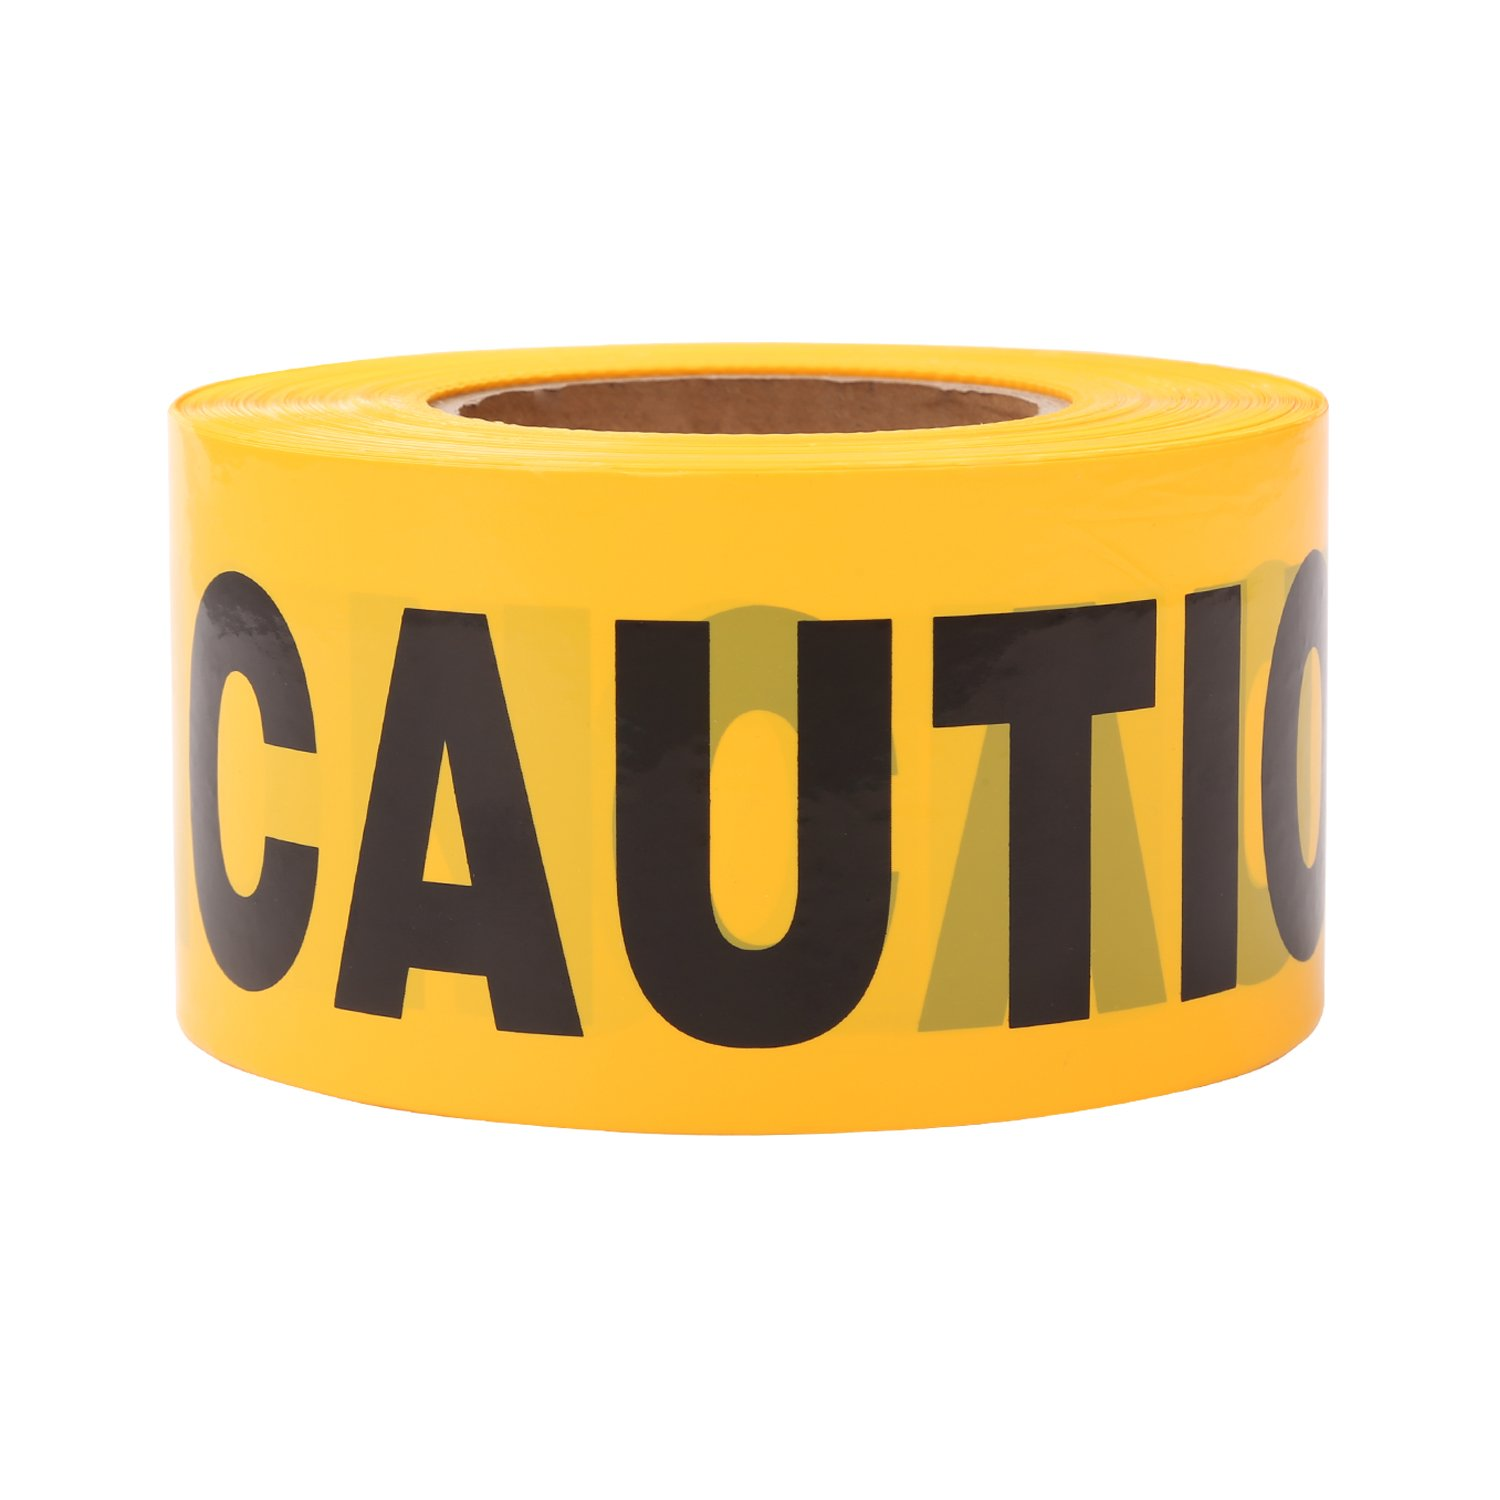 TopSoon Yellow CAUTION Tape Roll 3 Inch by 1000 Feet Non Adhesive Construction Caution Tape Safety Barrier Tape Ribbon Tape Warning Tape for Danger Hazardous Areas